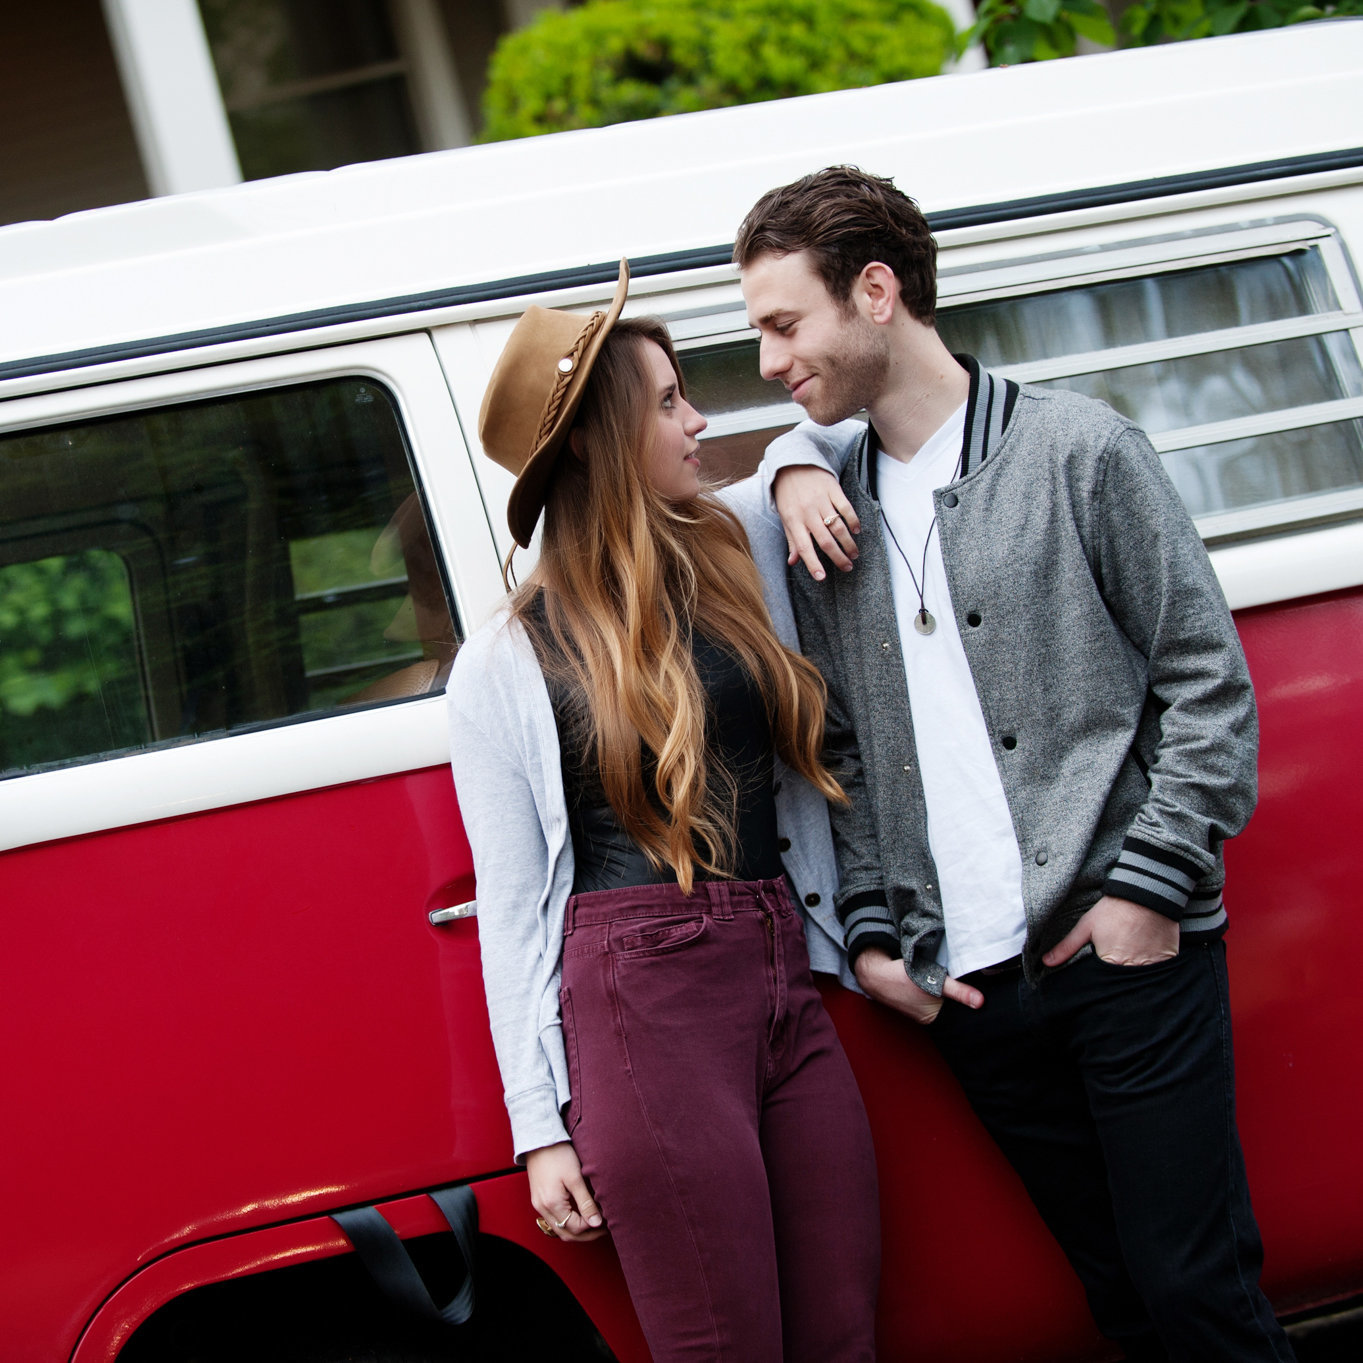 a stylish man and woman stand close in front of a vibrant red and white vw bus